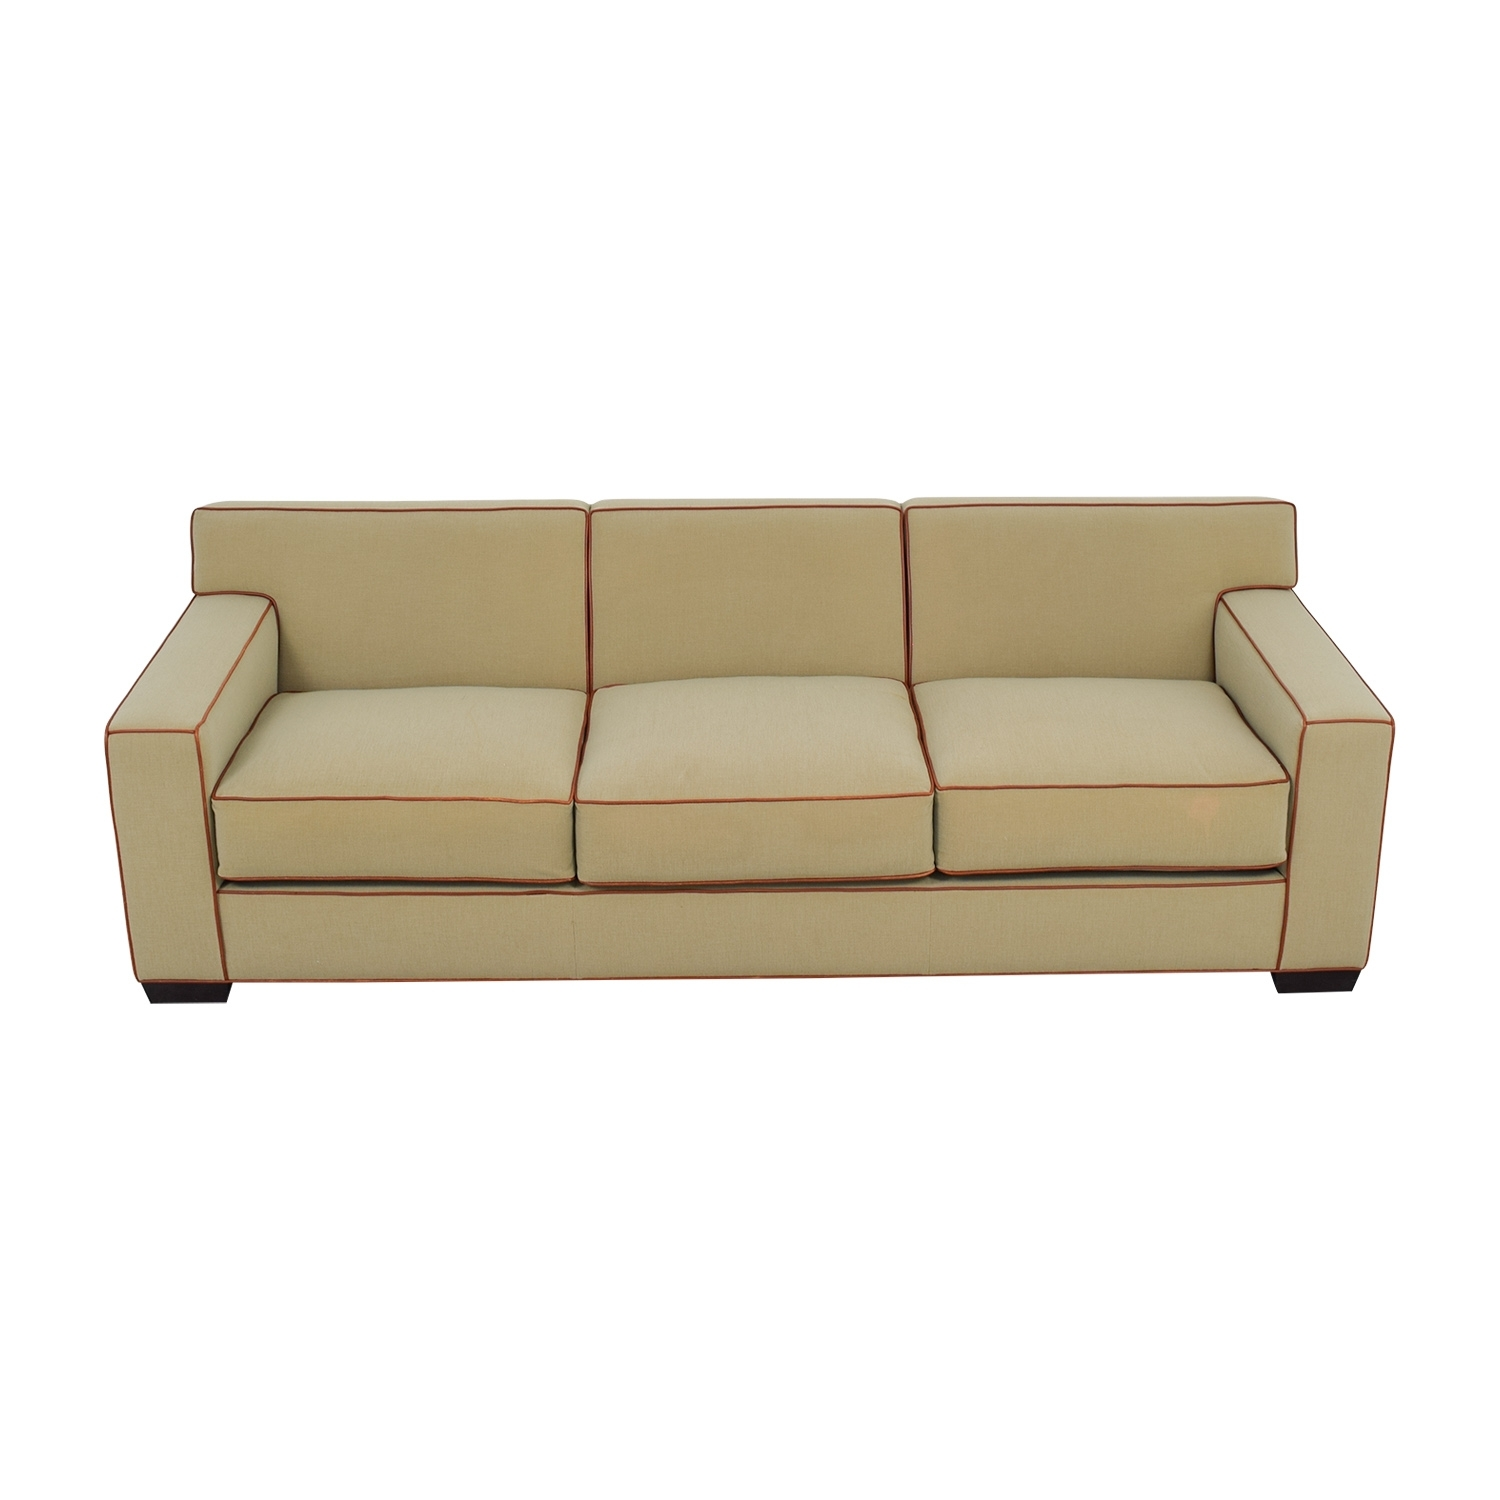 Cognac Sofa | Baci Living Room intended for Tenny Cognac 2 Piece Left Facing Chaise Sectionals With 2 Headrest (Image 9 of 30)